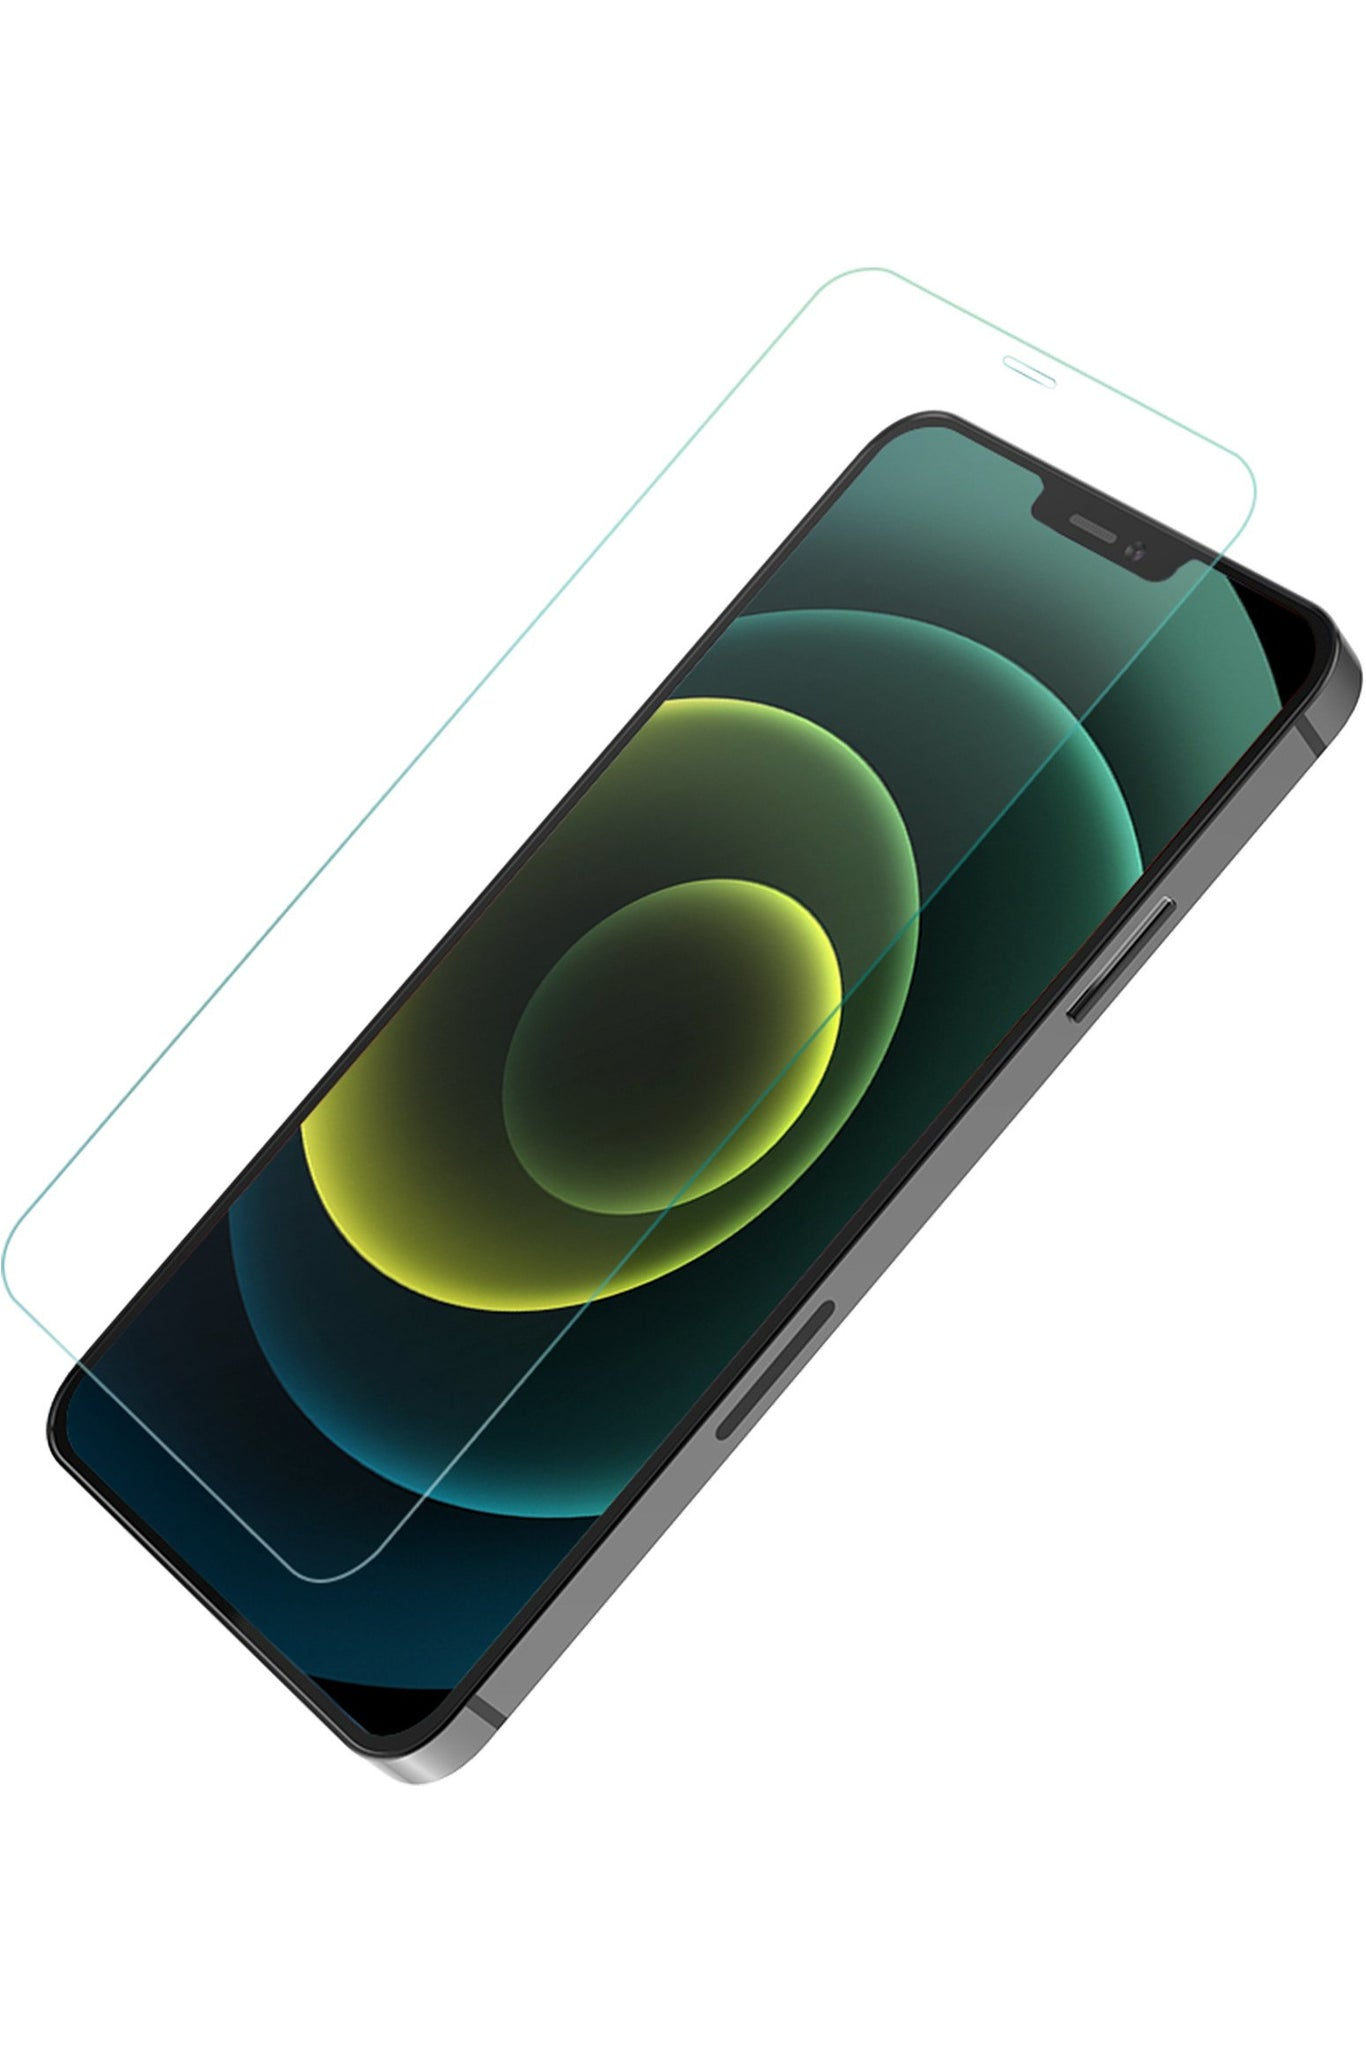 Jcpal iClara Glass Screen Protector for iPhone 12 Pro Max Clear